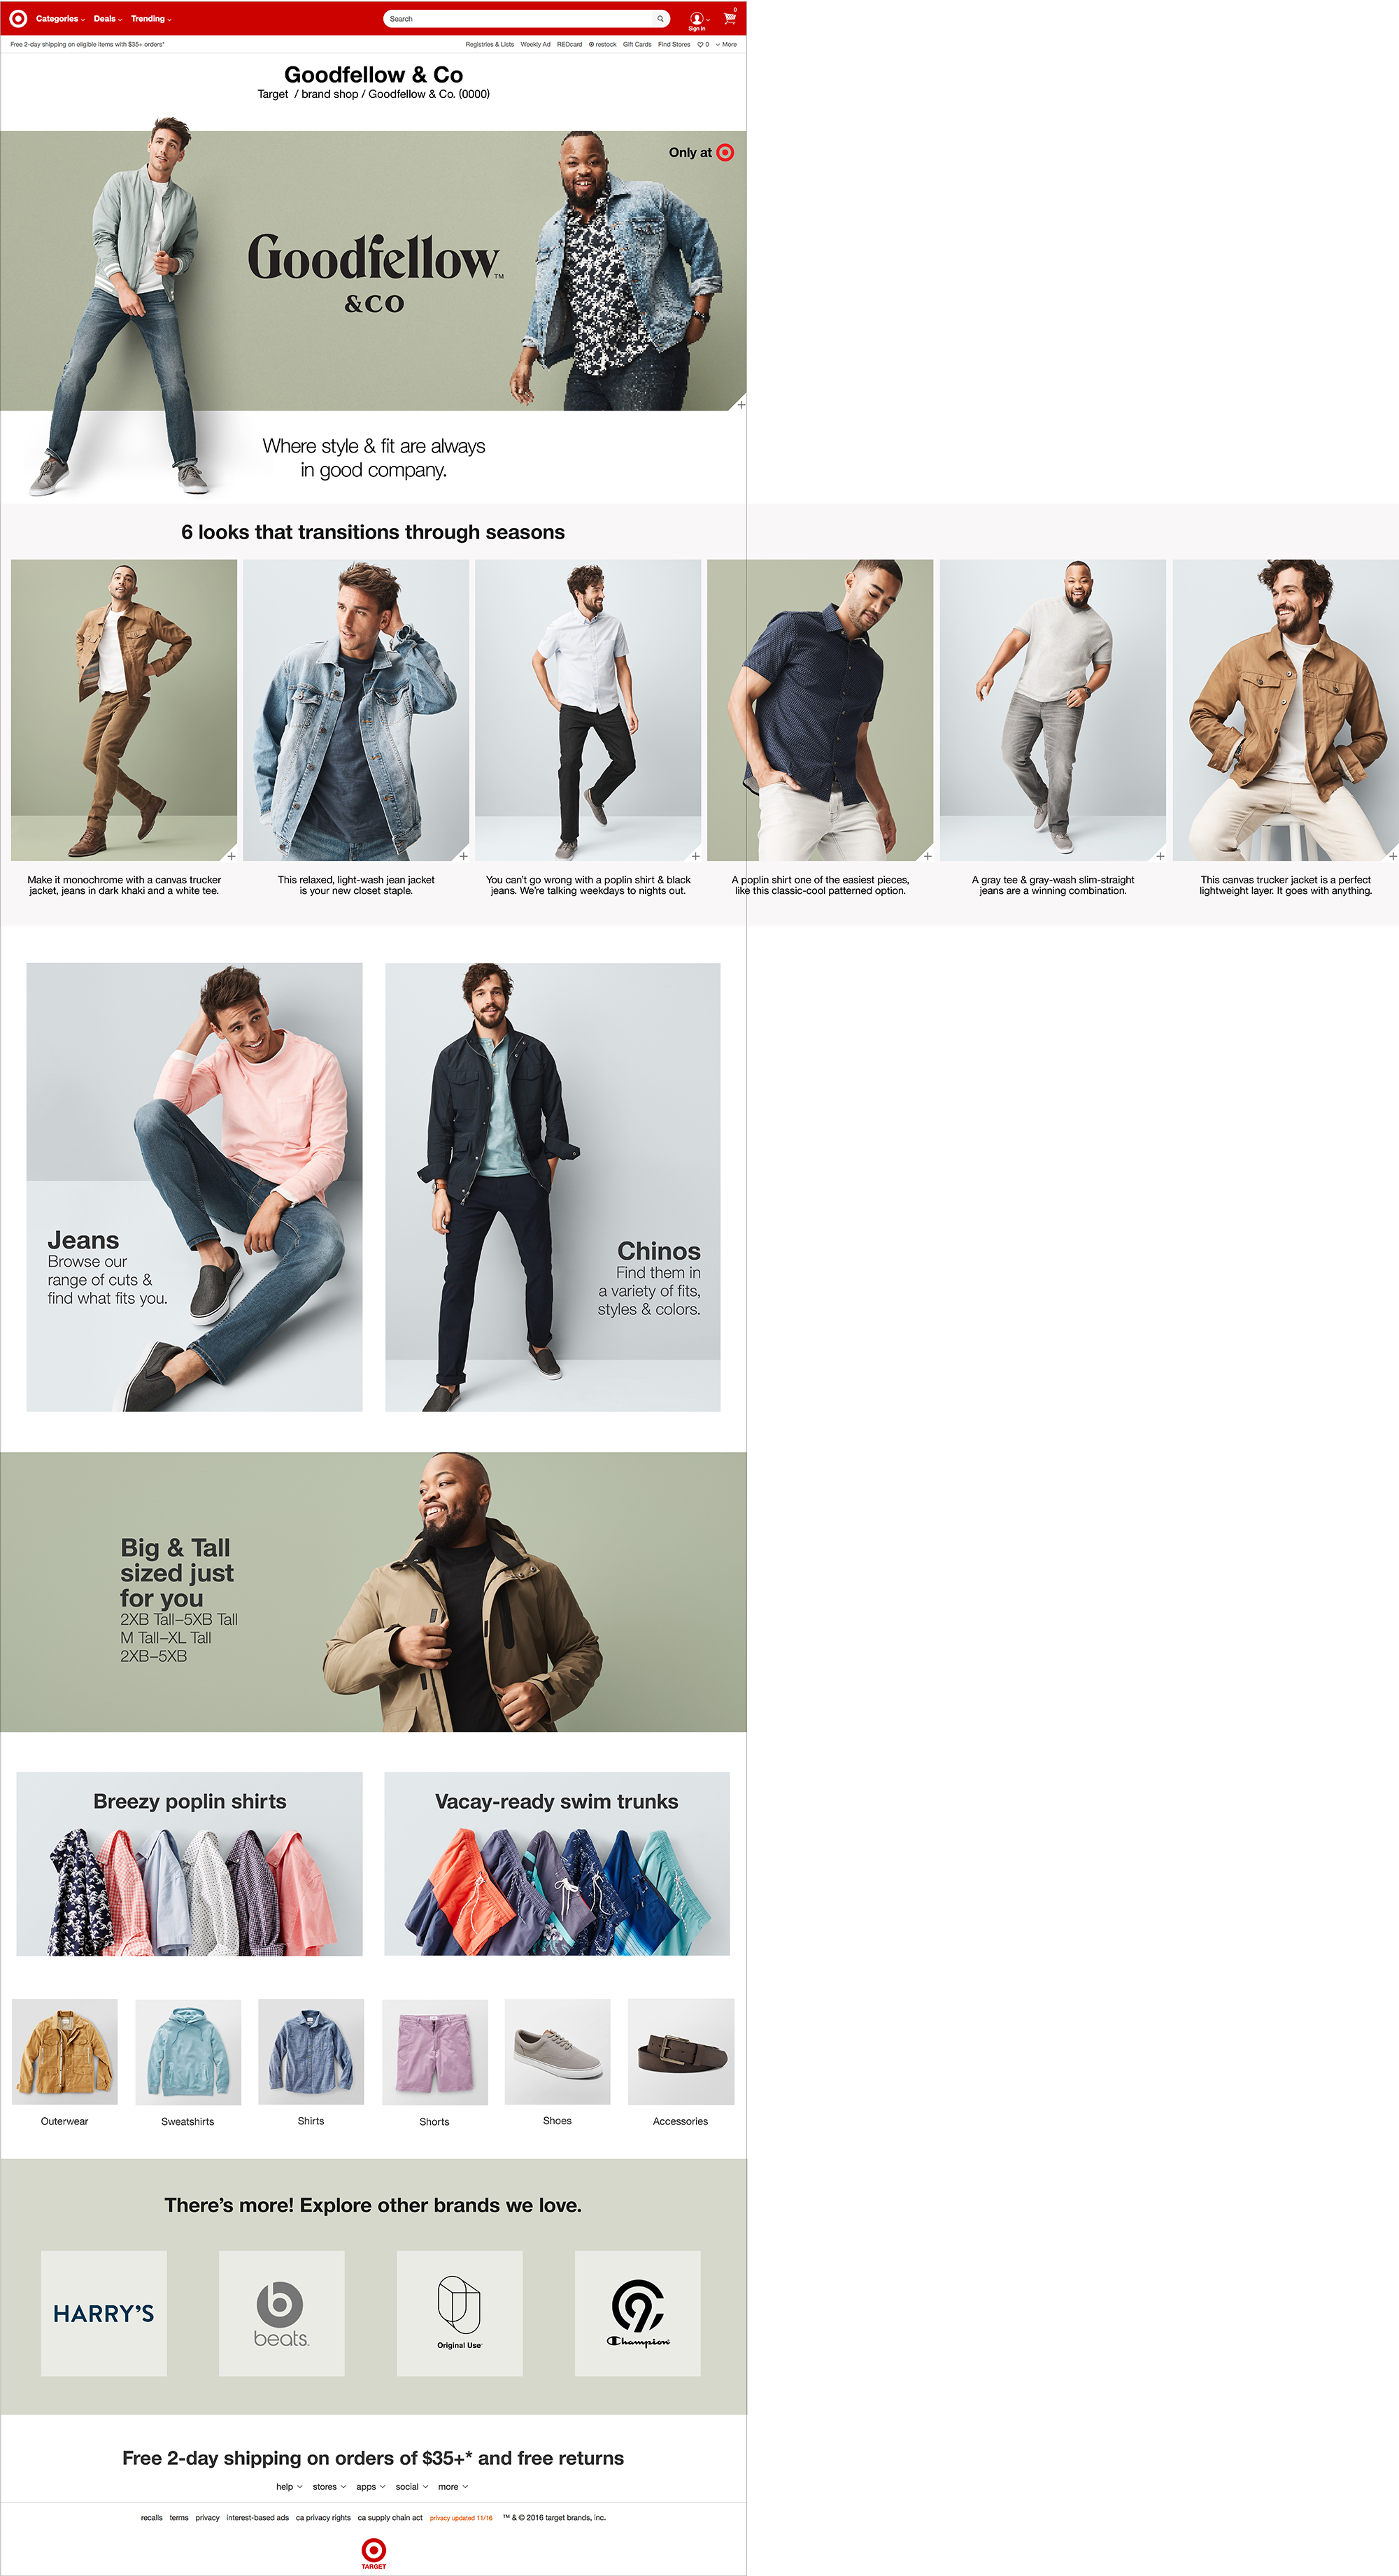 Target Goodfellow Brand Page